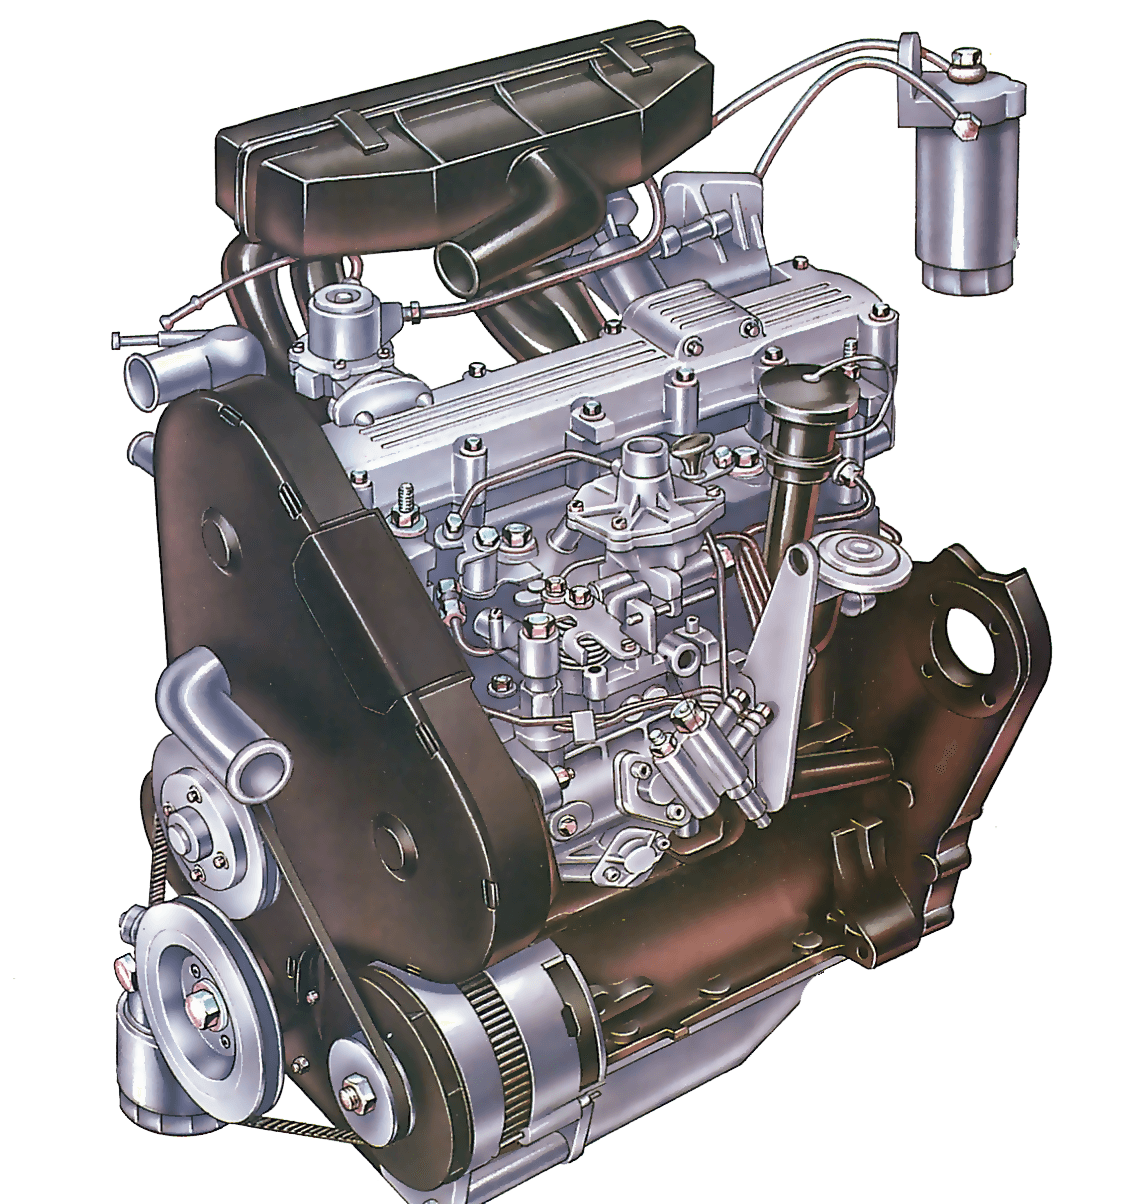 Servicing a diesel engine | How a Car Works